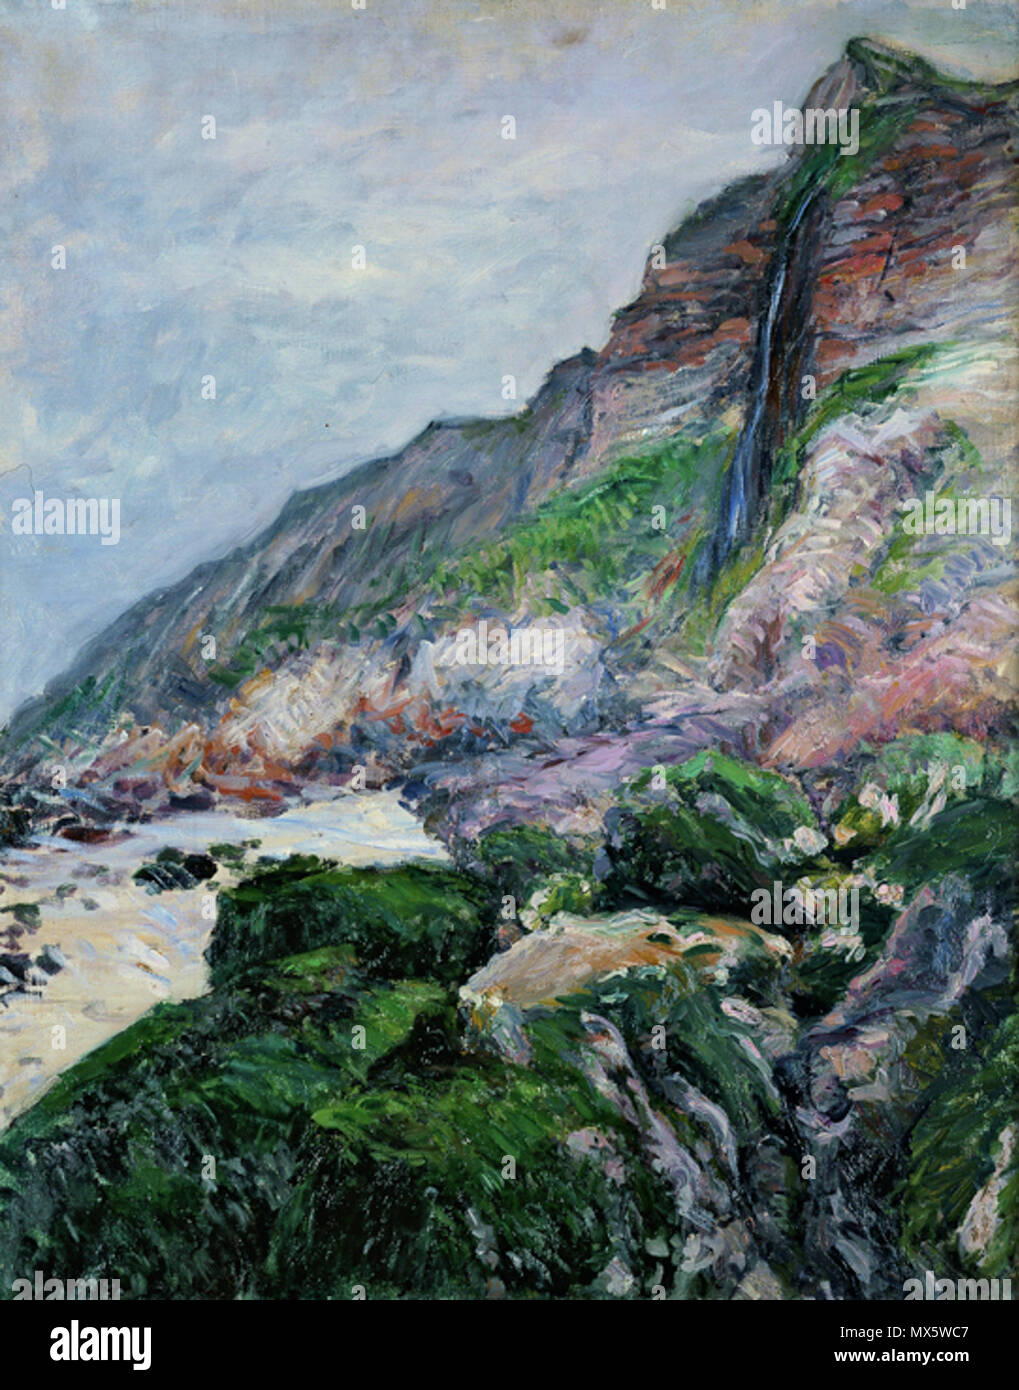 .  English: Painting by Gustave Caillebotte, (French impressionist, 1848–1894) entitled Cliffs in Normandy, 1880. Oil on canvas, 28 3/4 x 23 5/8 in. (73 x 60 cm). Private collection . 22 February 2013, 11:06:06 99 Brooklyn Caillebotte cliffs-in-normandy - Stock Image